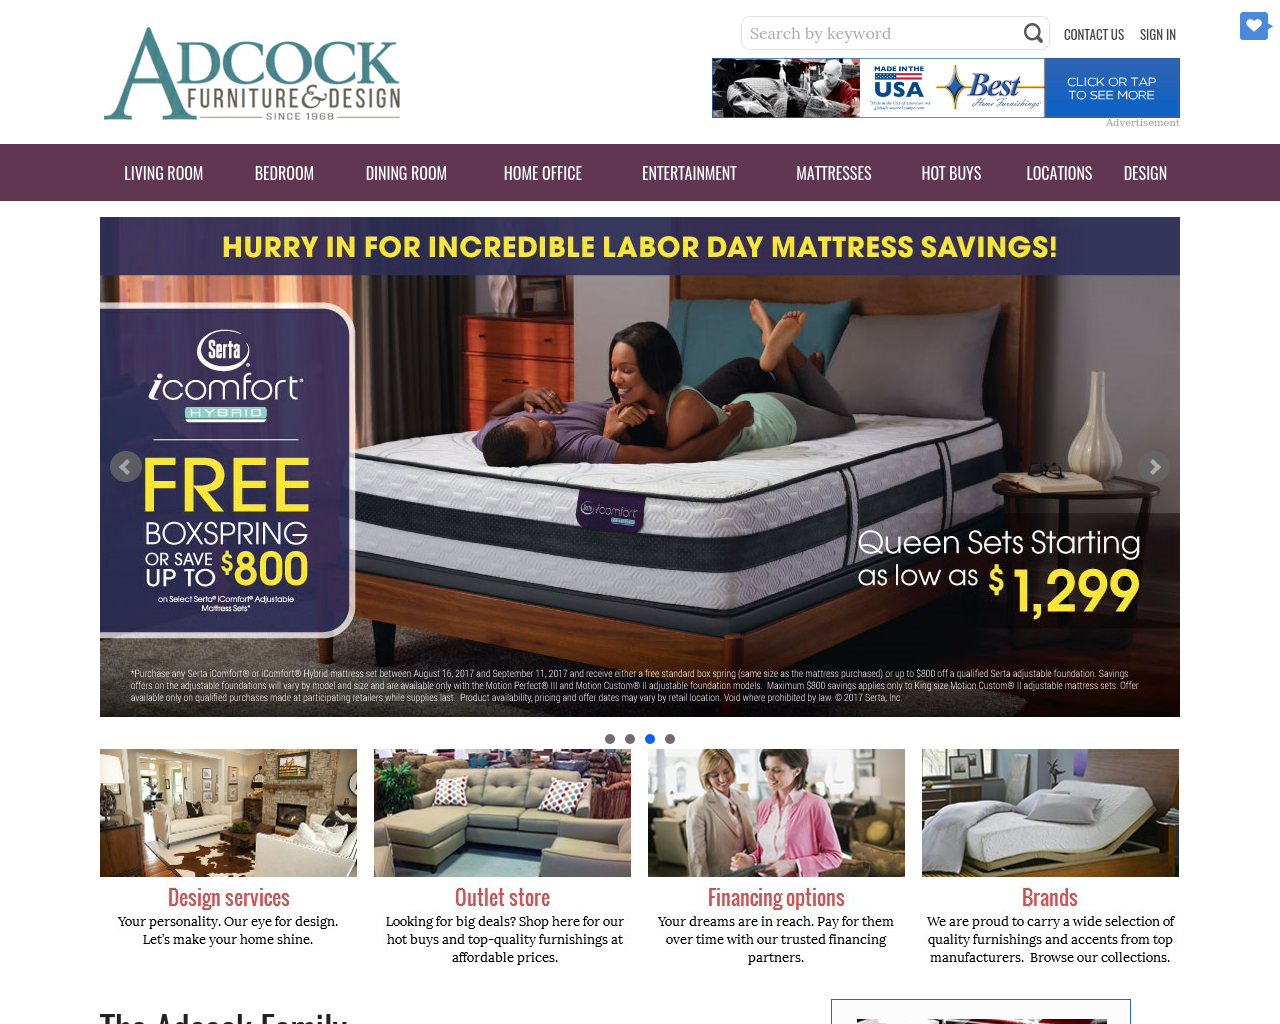 Ad-Cock-Furniture-Advertising-Reviews-Pricing